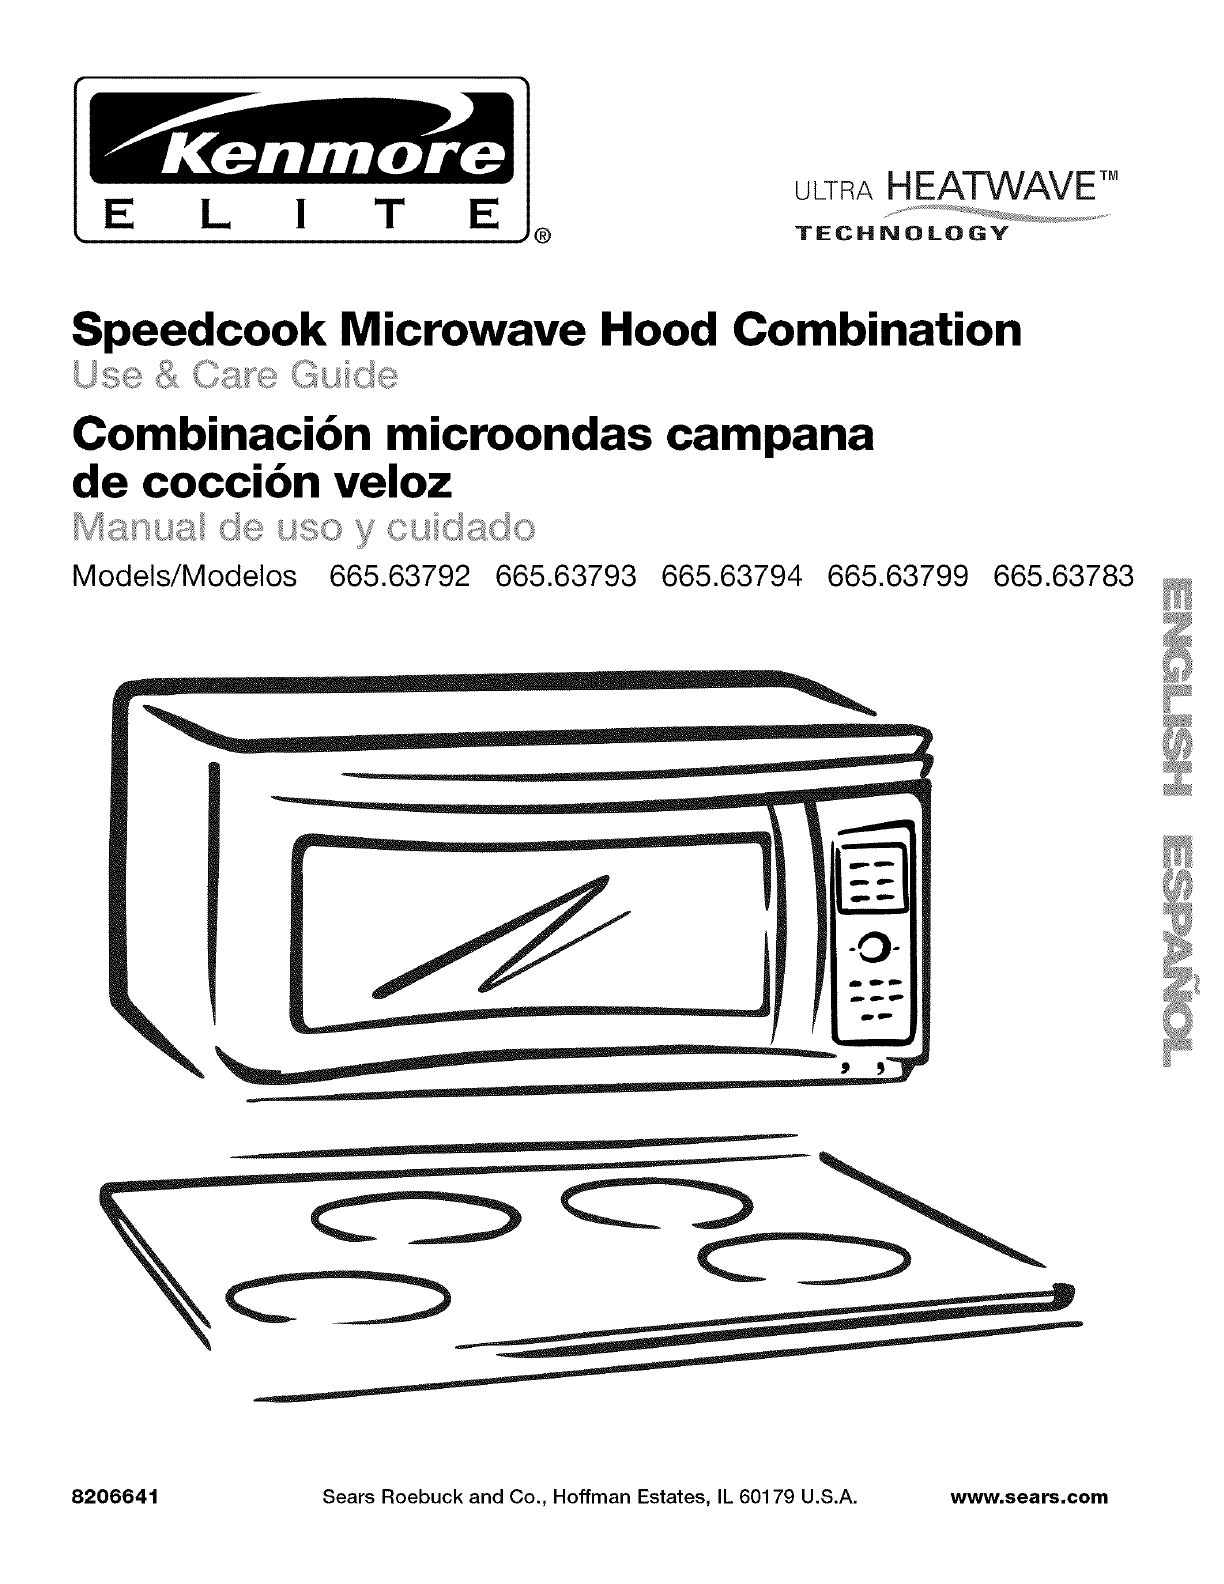 Kenmore Elite Microwave Hood Combination Troubleshooting